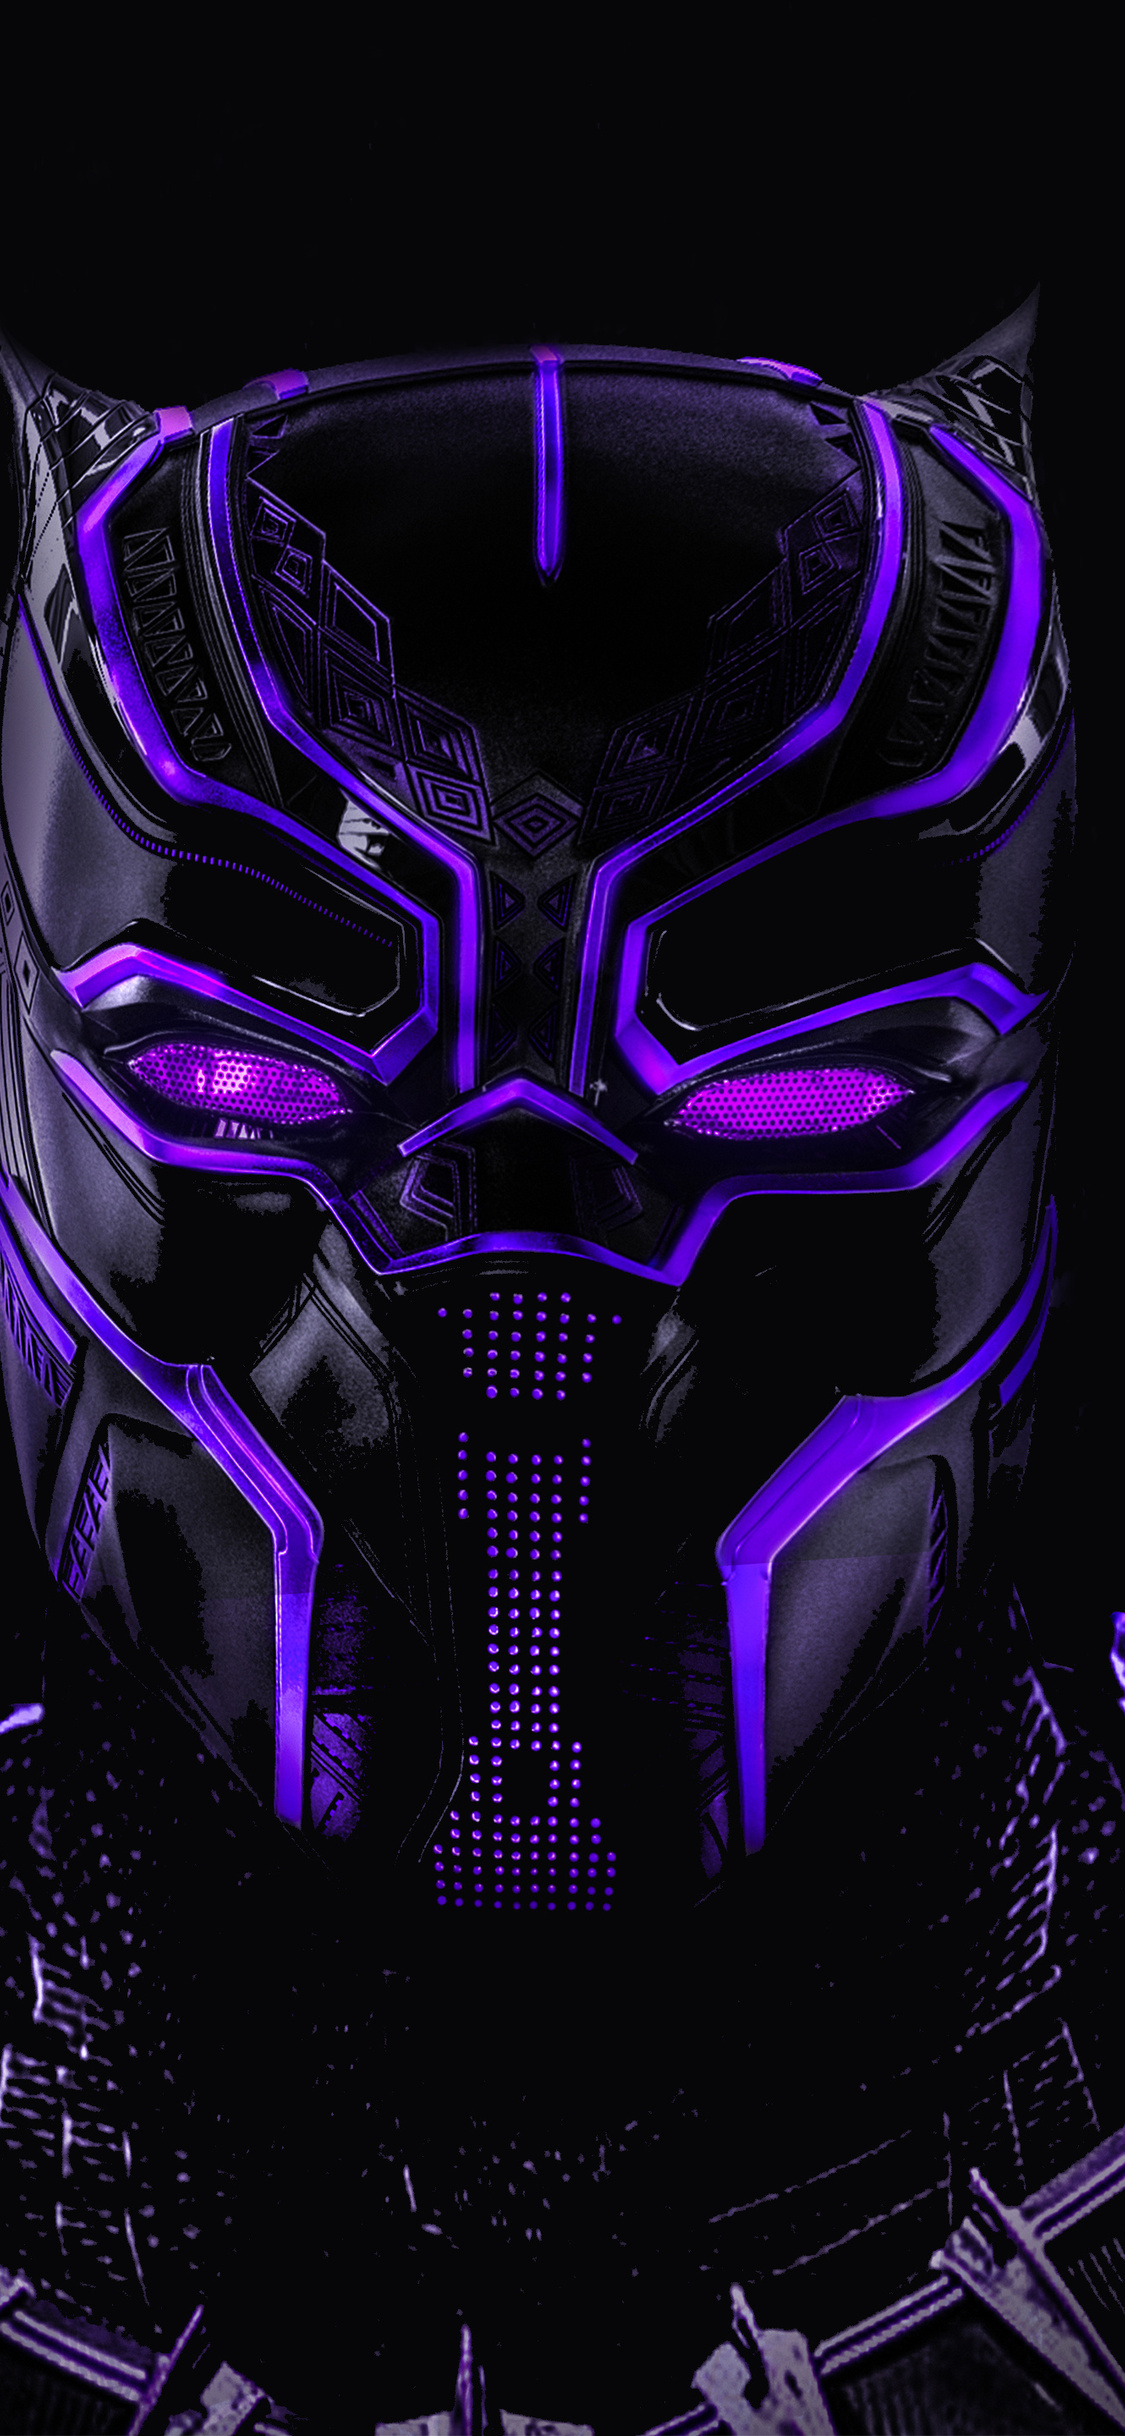 black panther hd wallpaper for iphone x